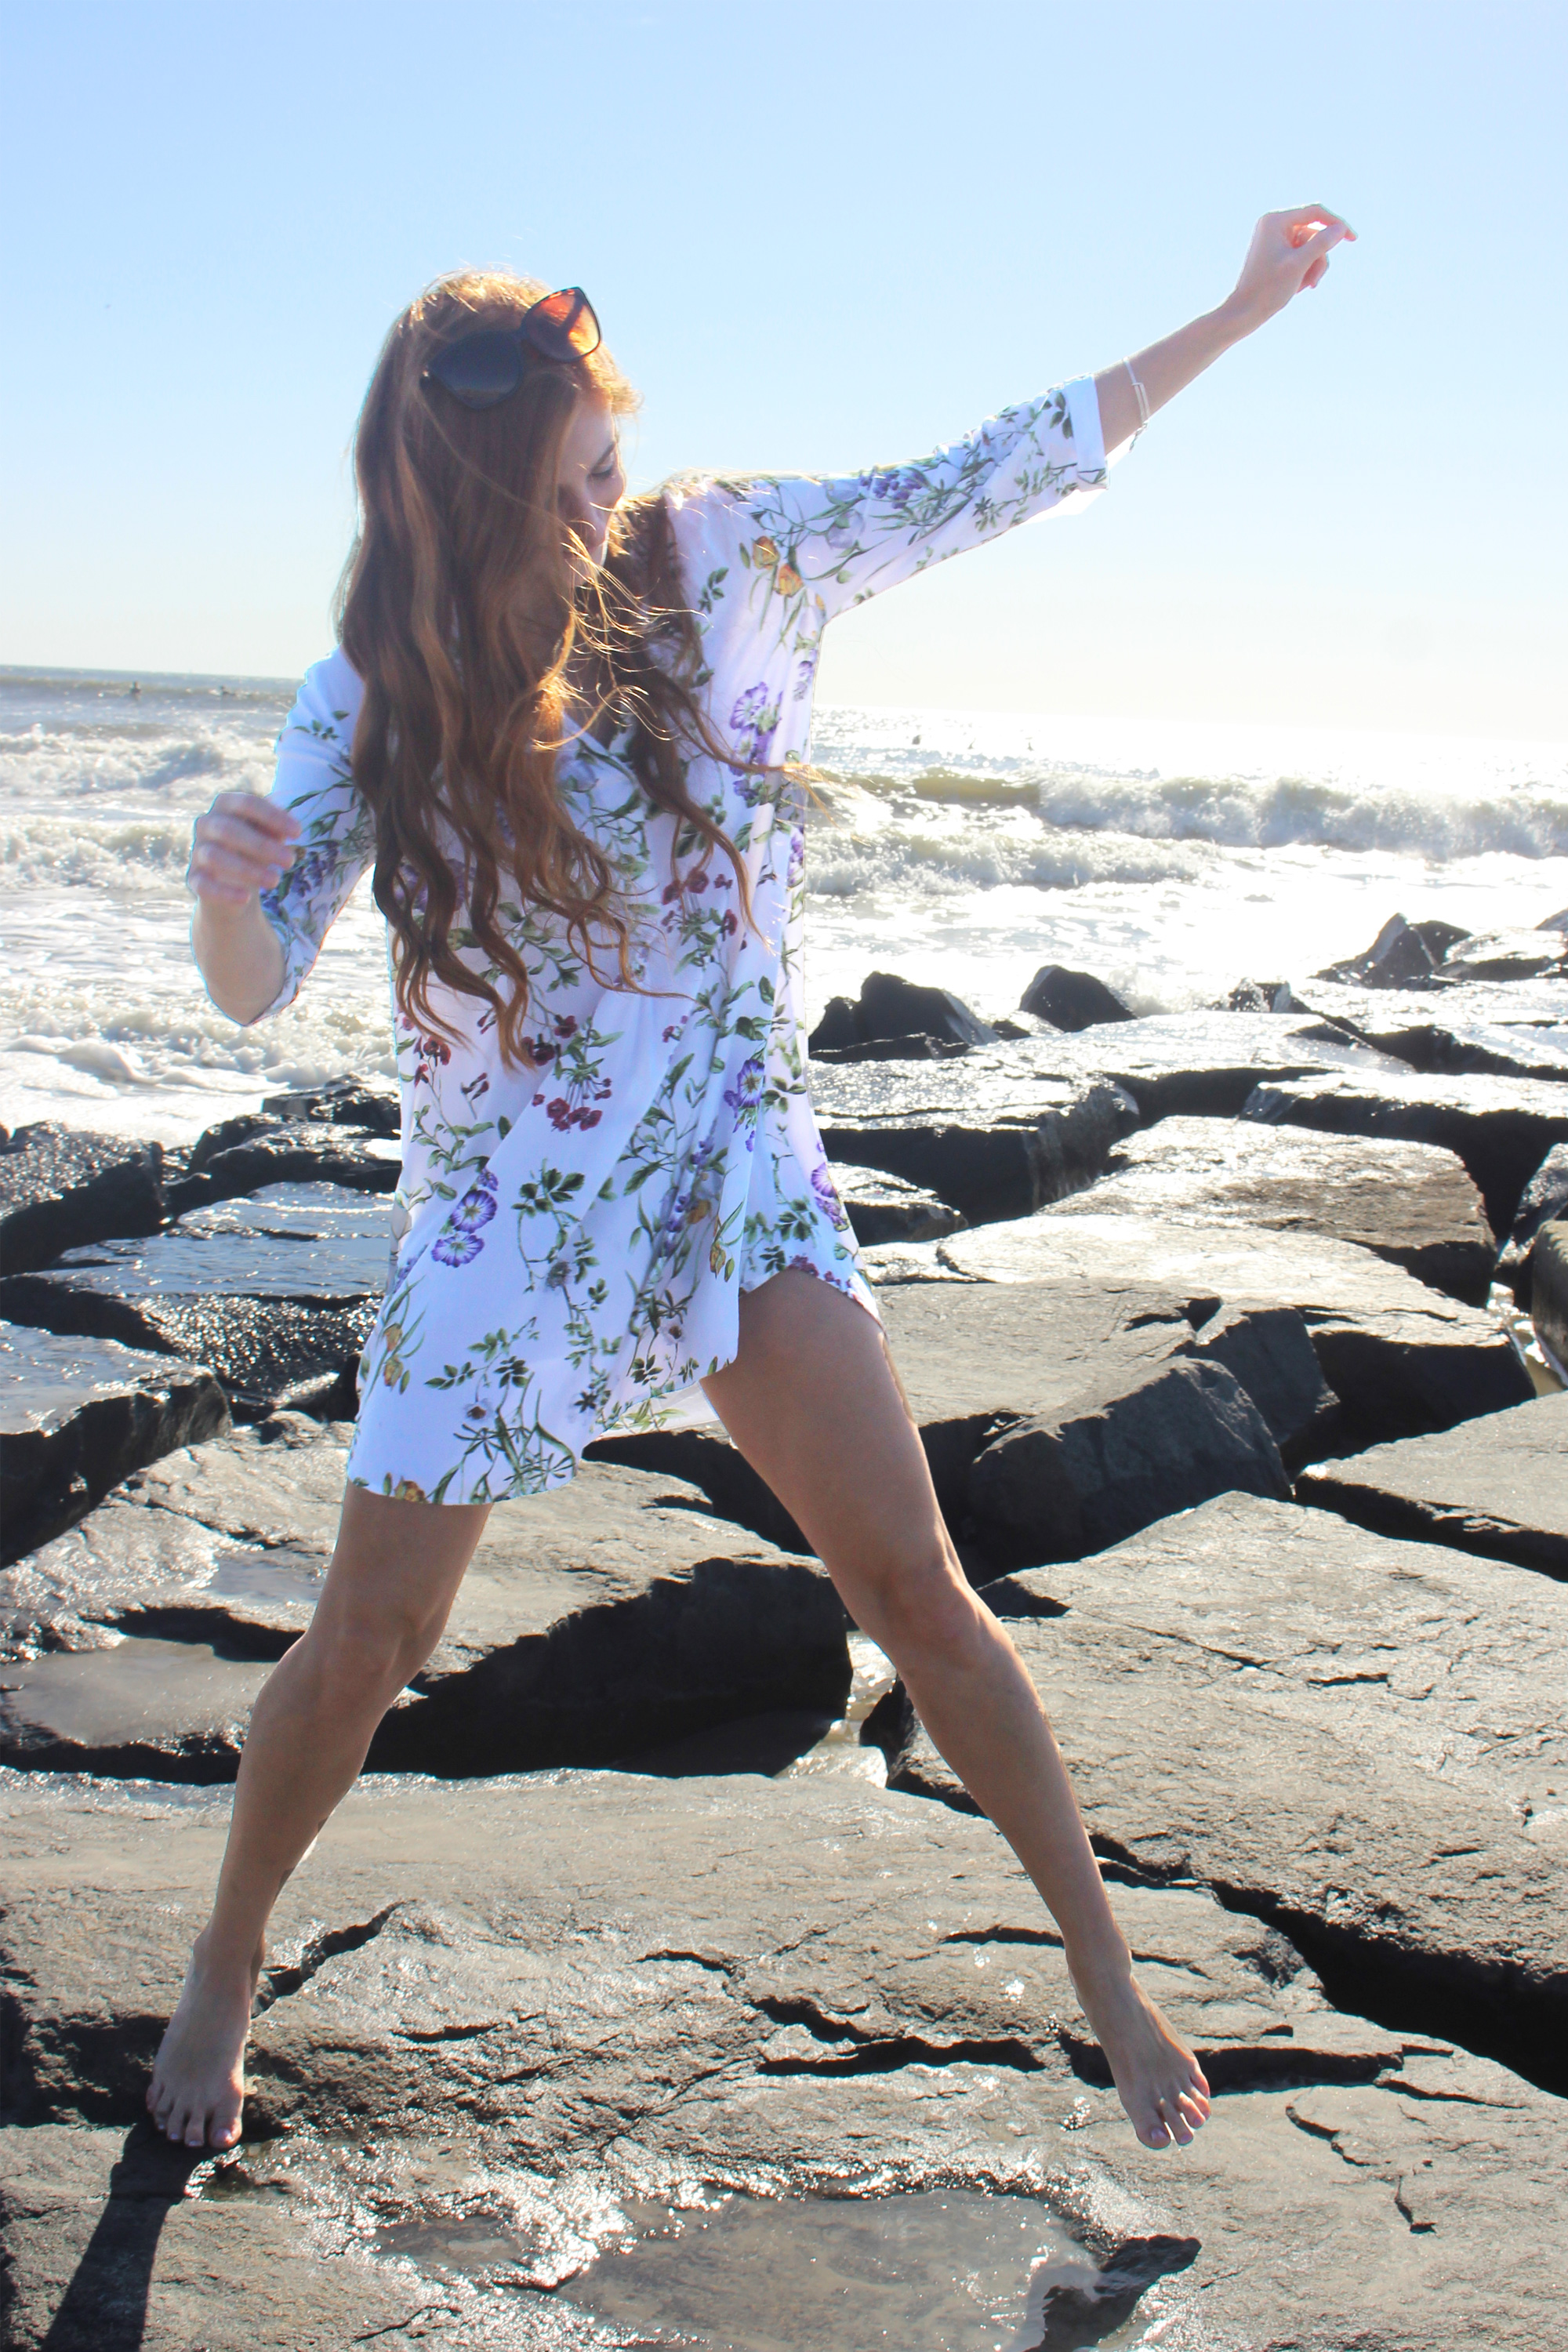 Redhead Girl jumping on rocks in floral dress